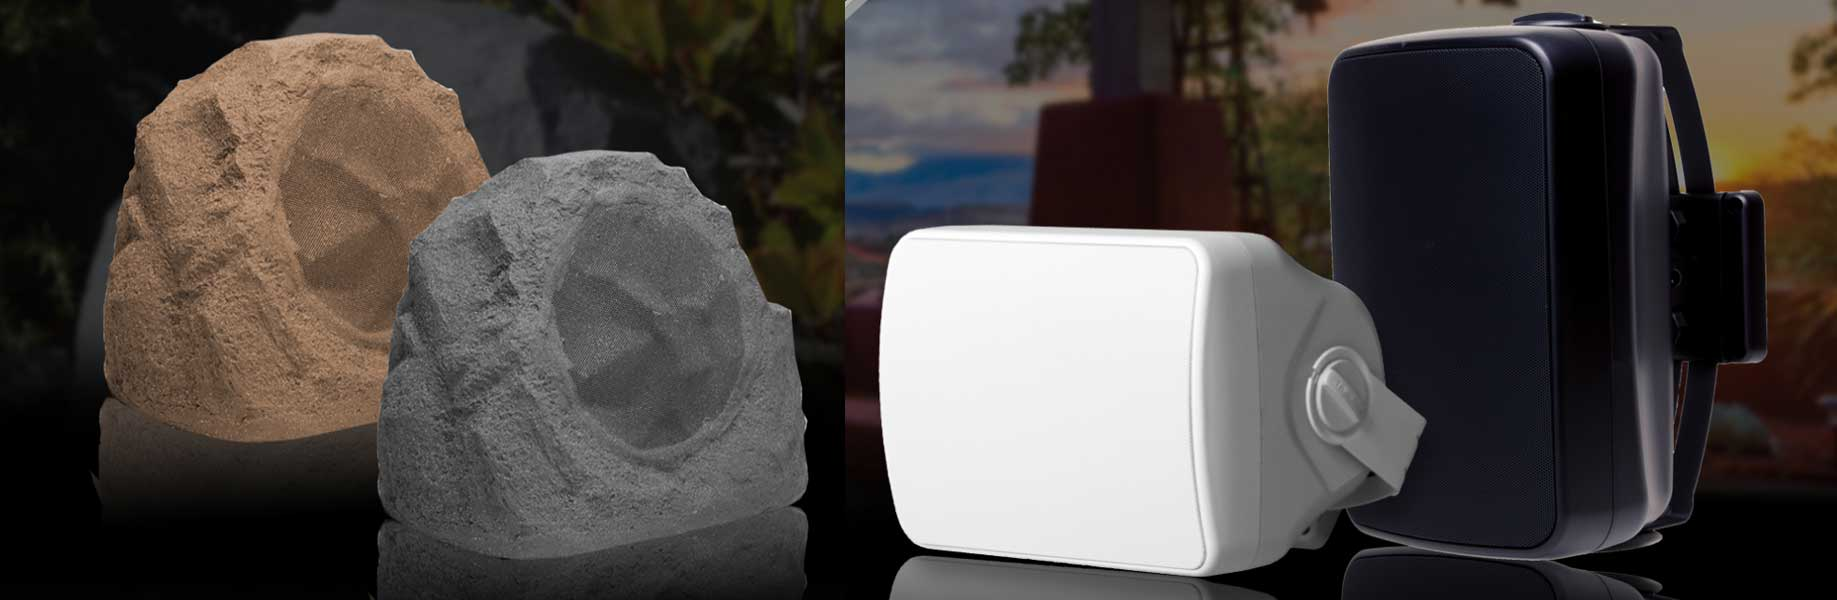 Truaudio Outdoor Speakers